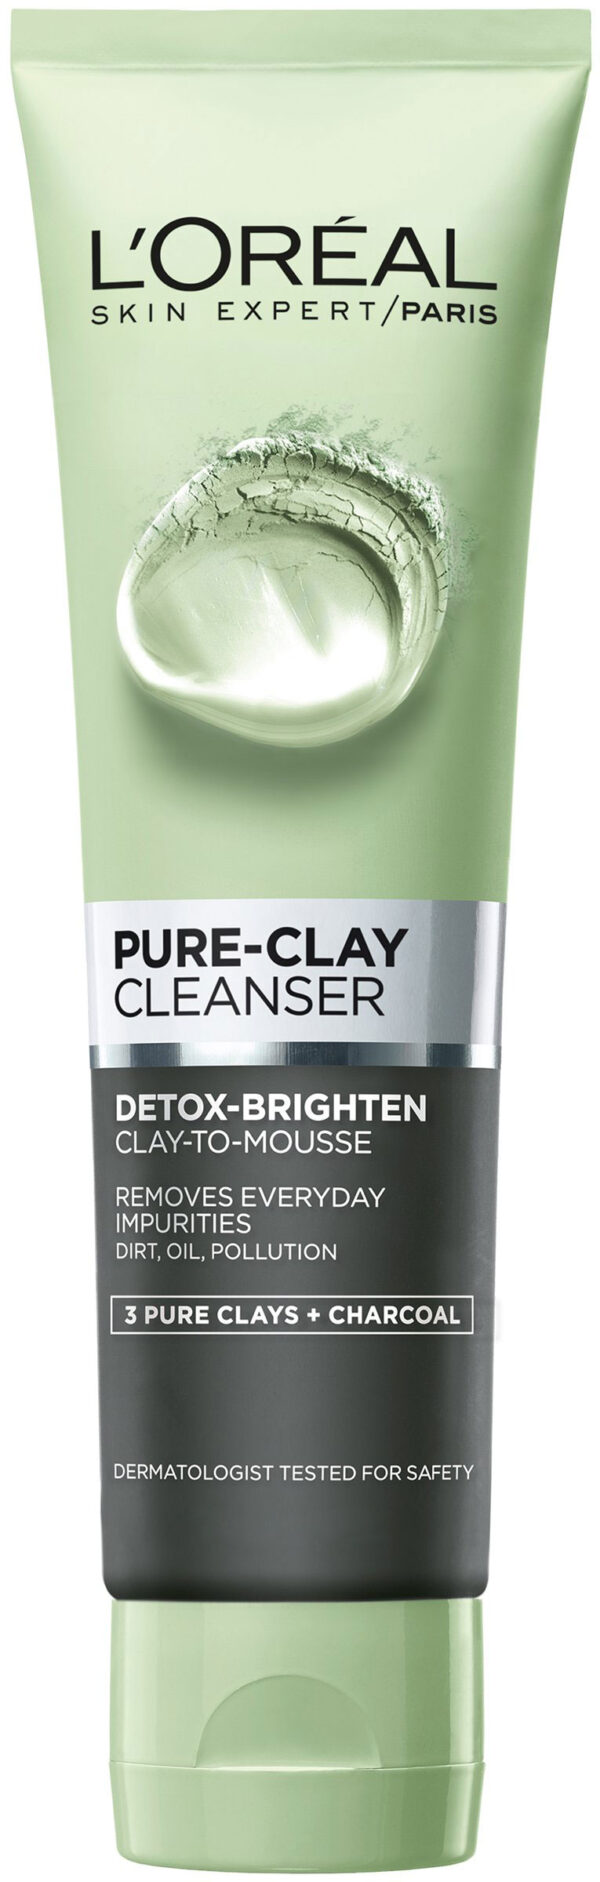 תרחיץ פנים שחור 150 מ״ל Pure Clay Cleanser 3 Pure Clays + Charcoal